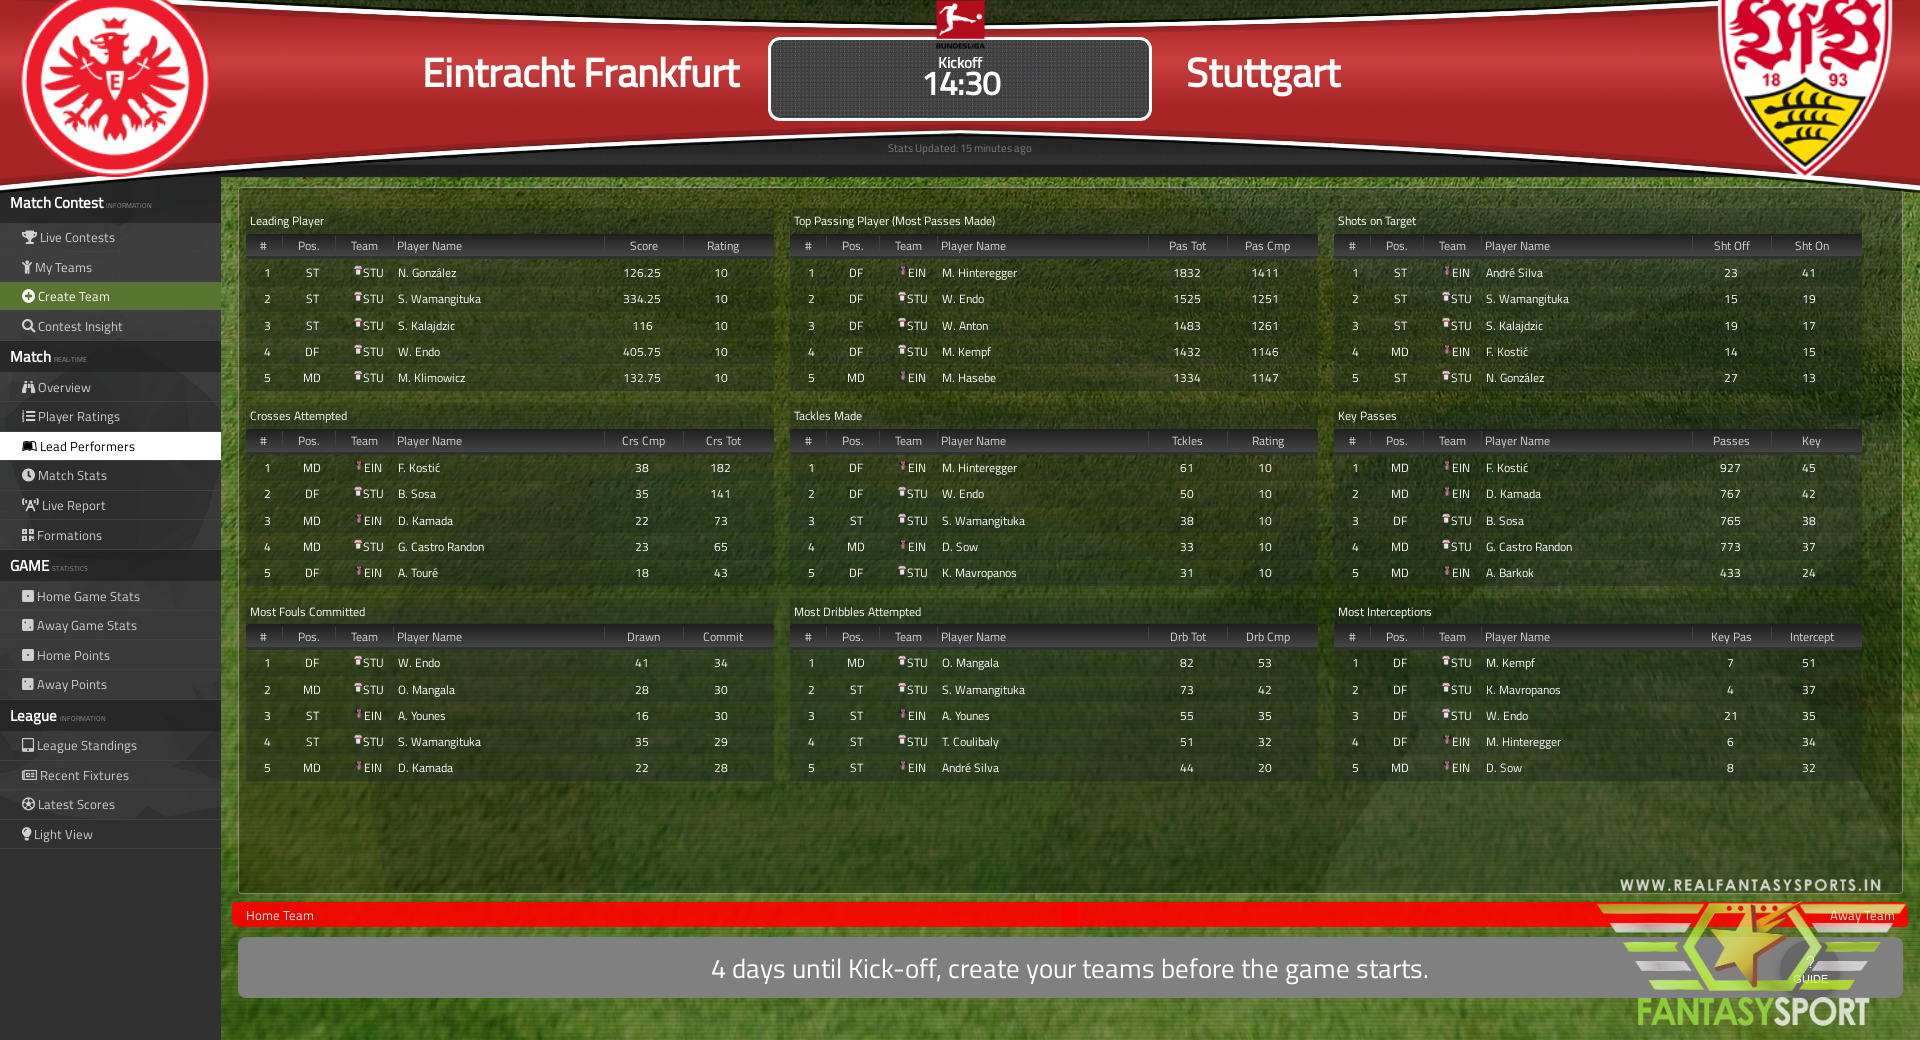 Eintracht Frankfurt vs Stuttgart prediction (6th March 2021)